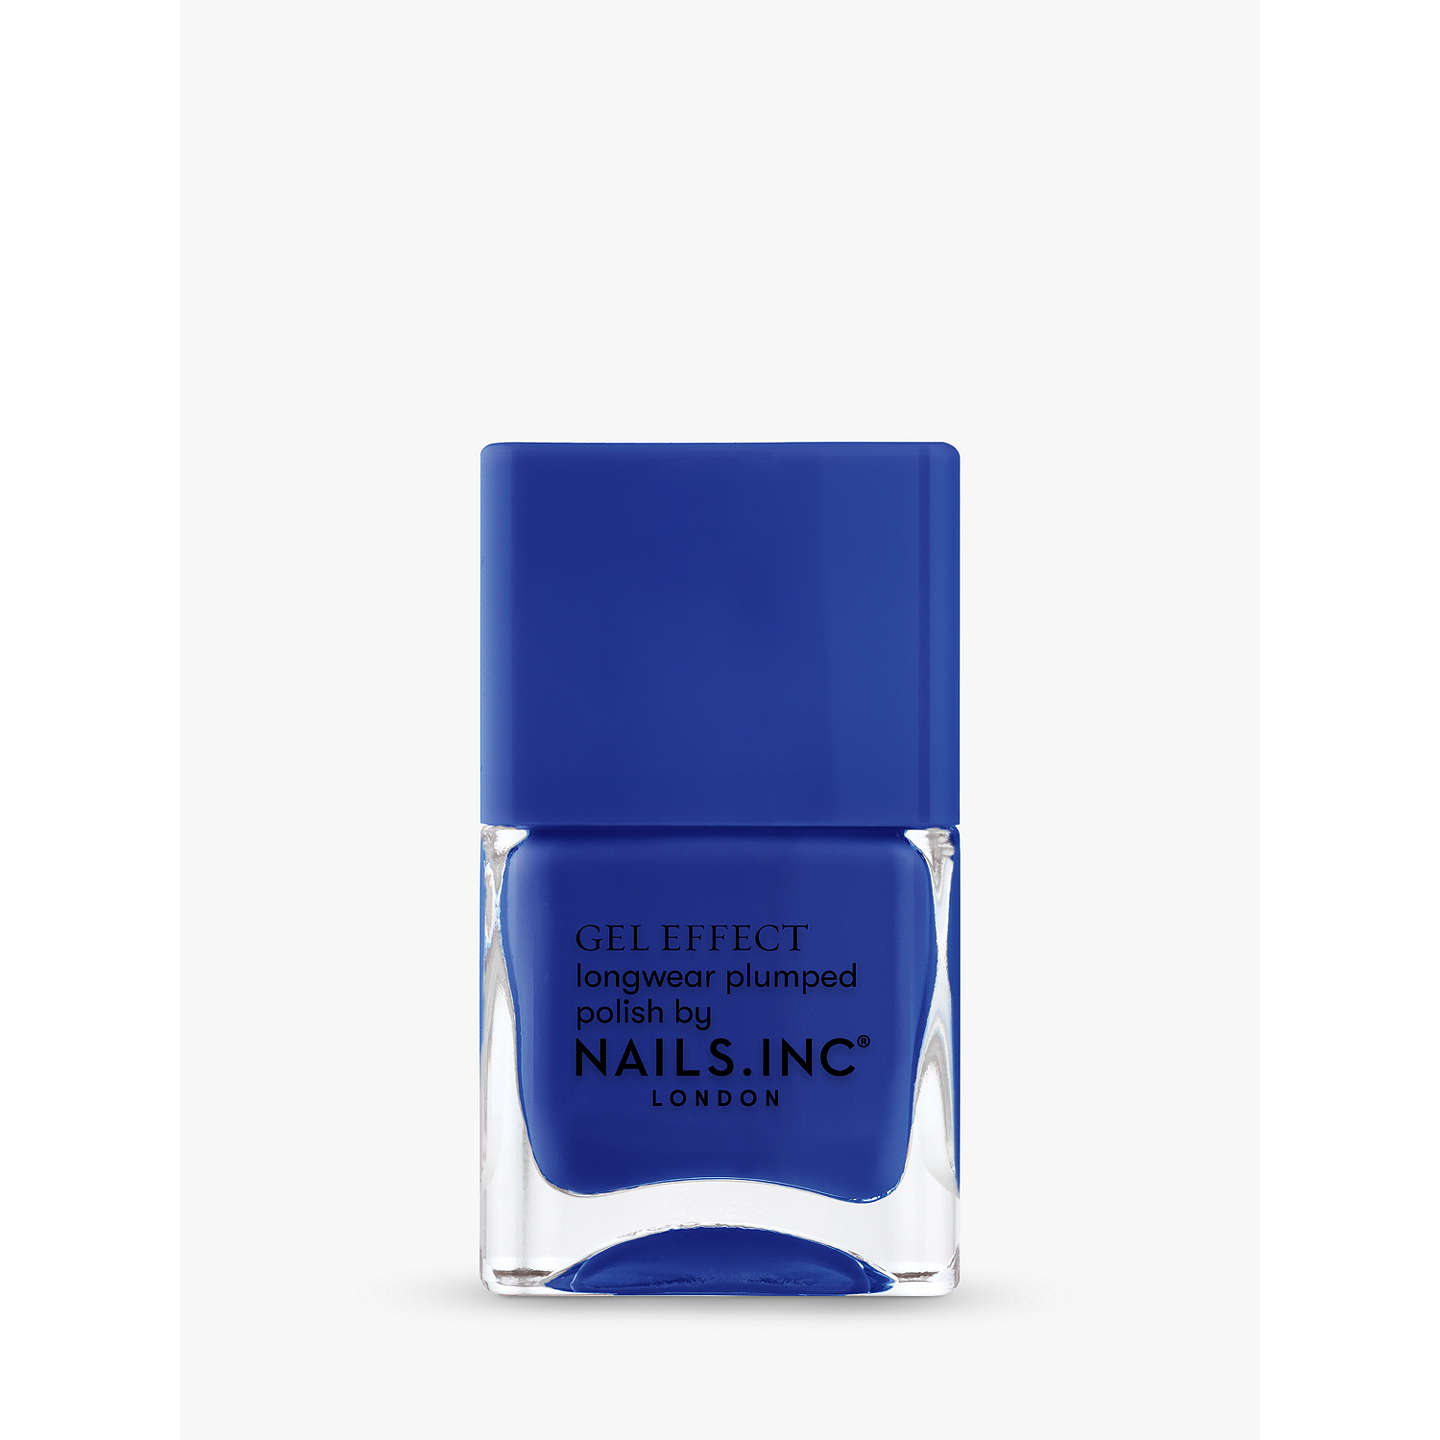 Nails Inc Gel Effect Nail Polish, 14ml at John Lewis